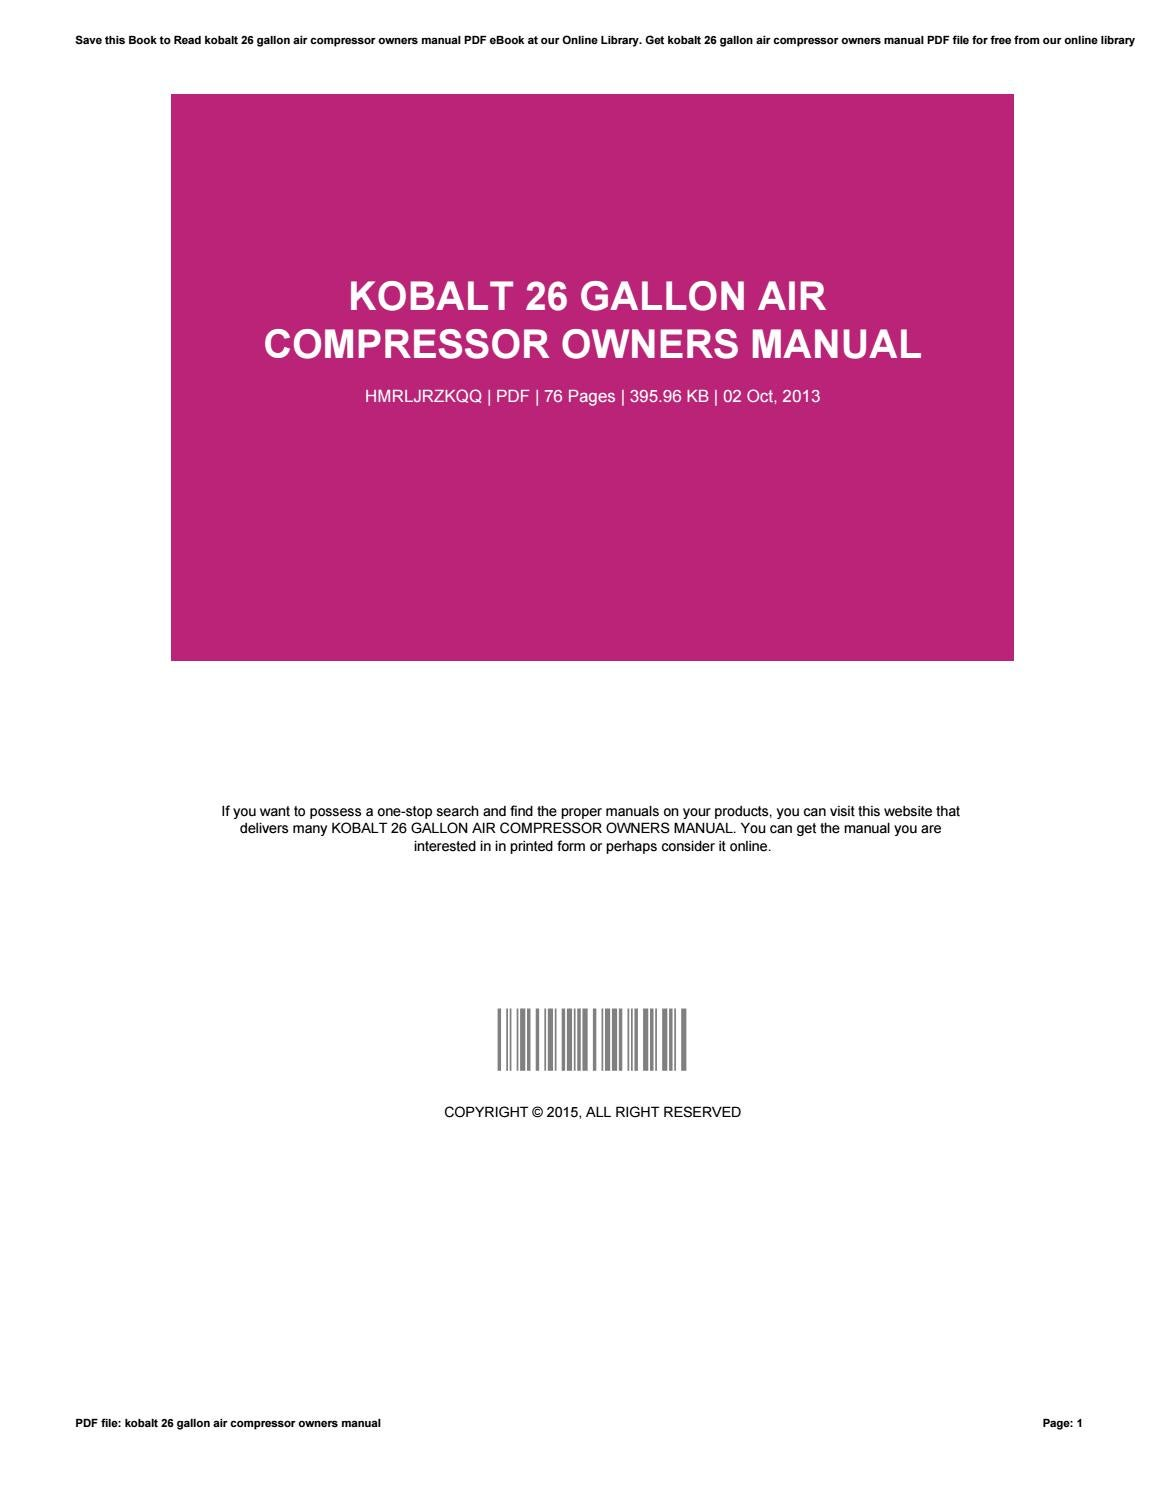 Kobalt 26 Gallon Air Compressor Owners Manual By Anthony